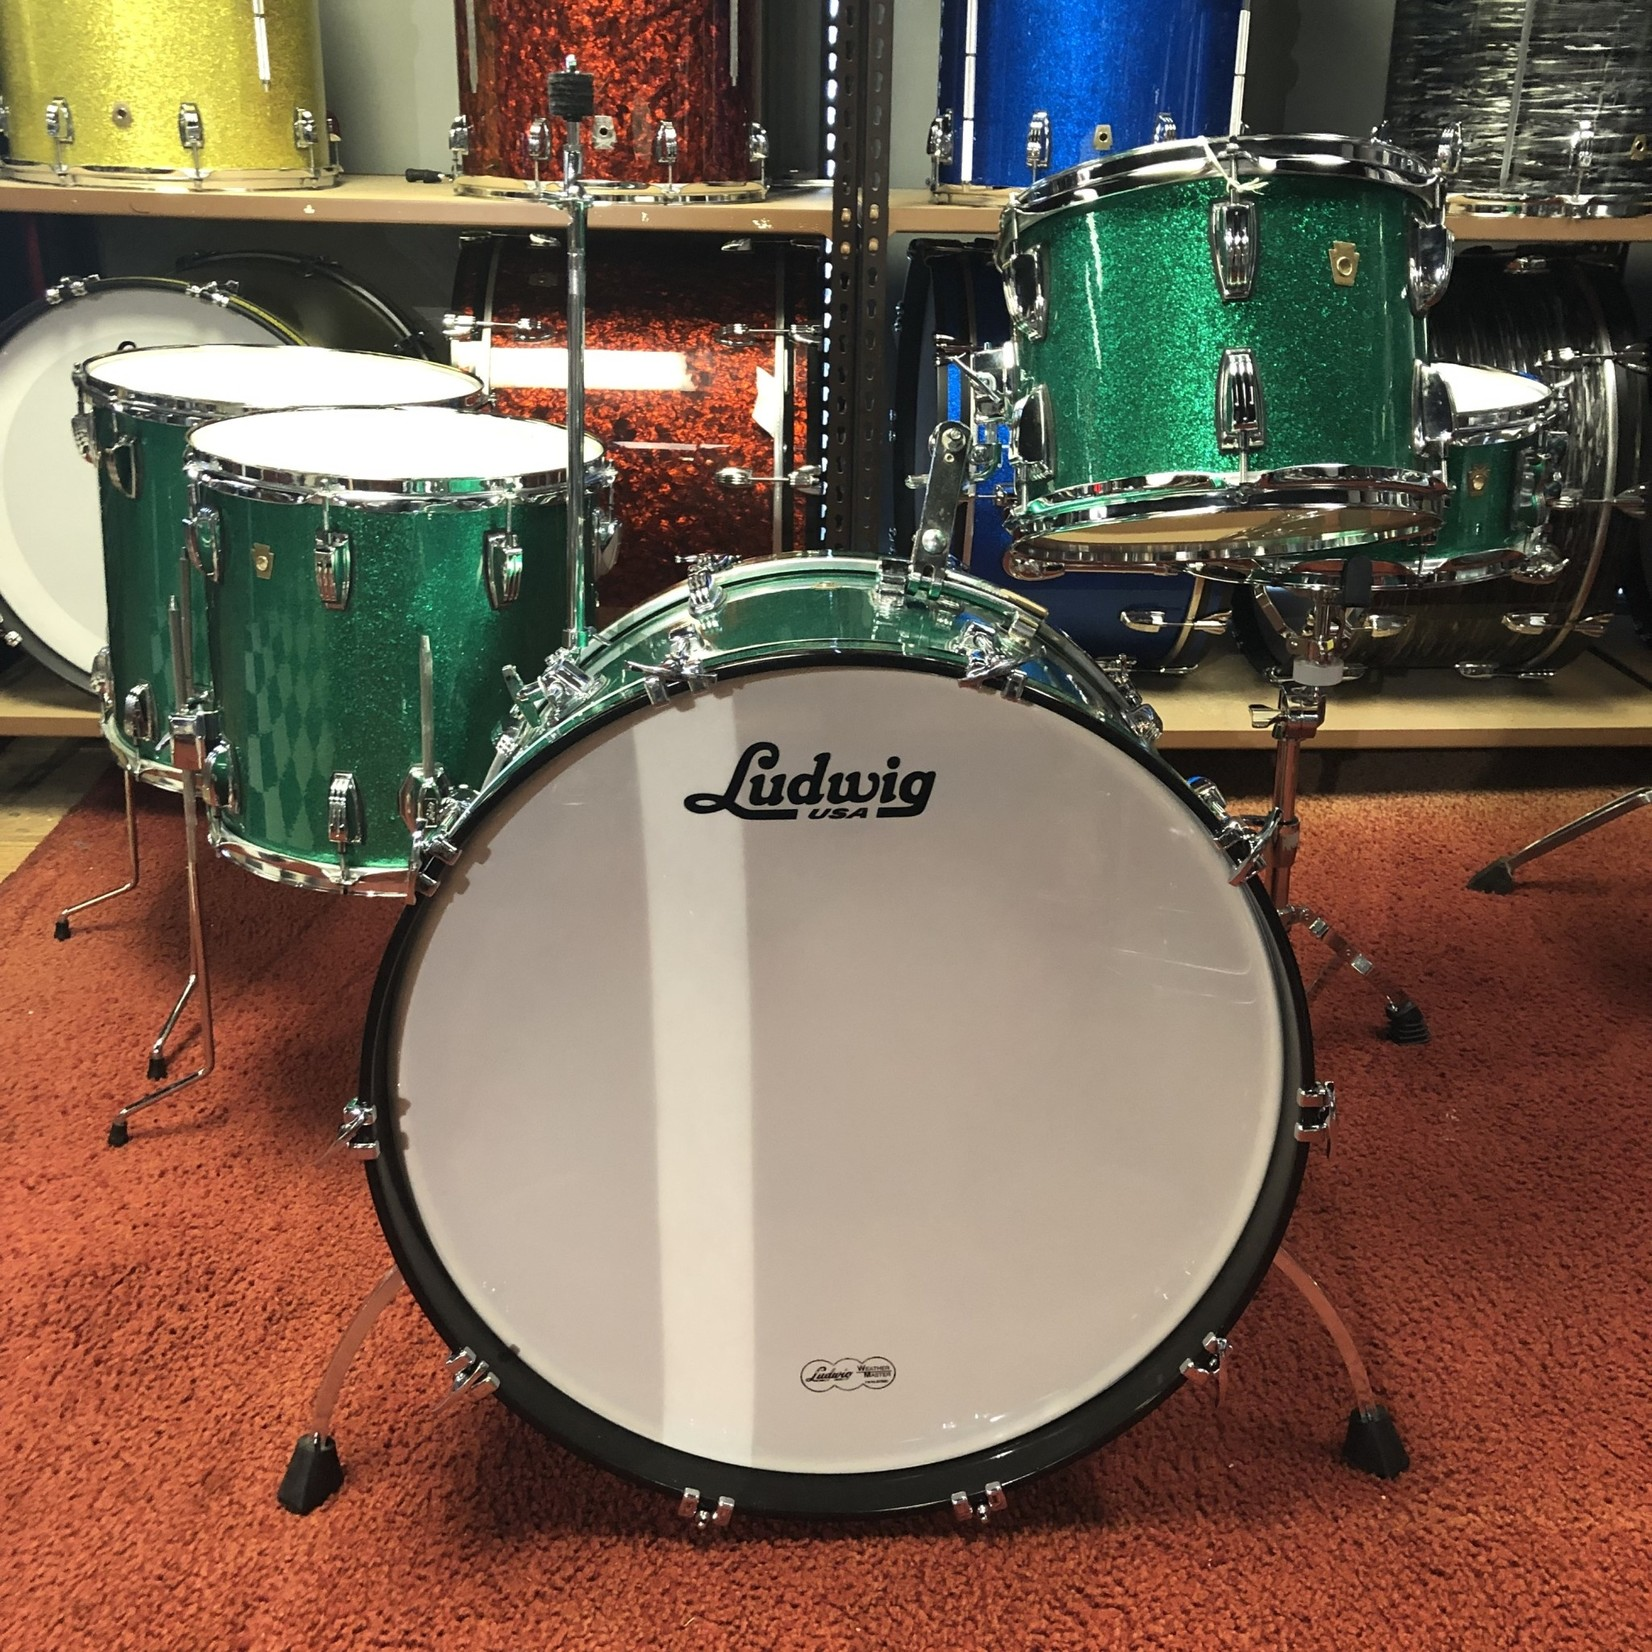 Ludwig LUDWIG LEGACY 5-PC SHELL PACK 12/14/16/24/14s (GREEN SPARKLE)